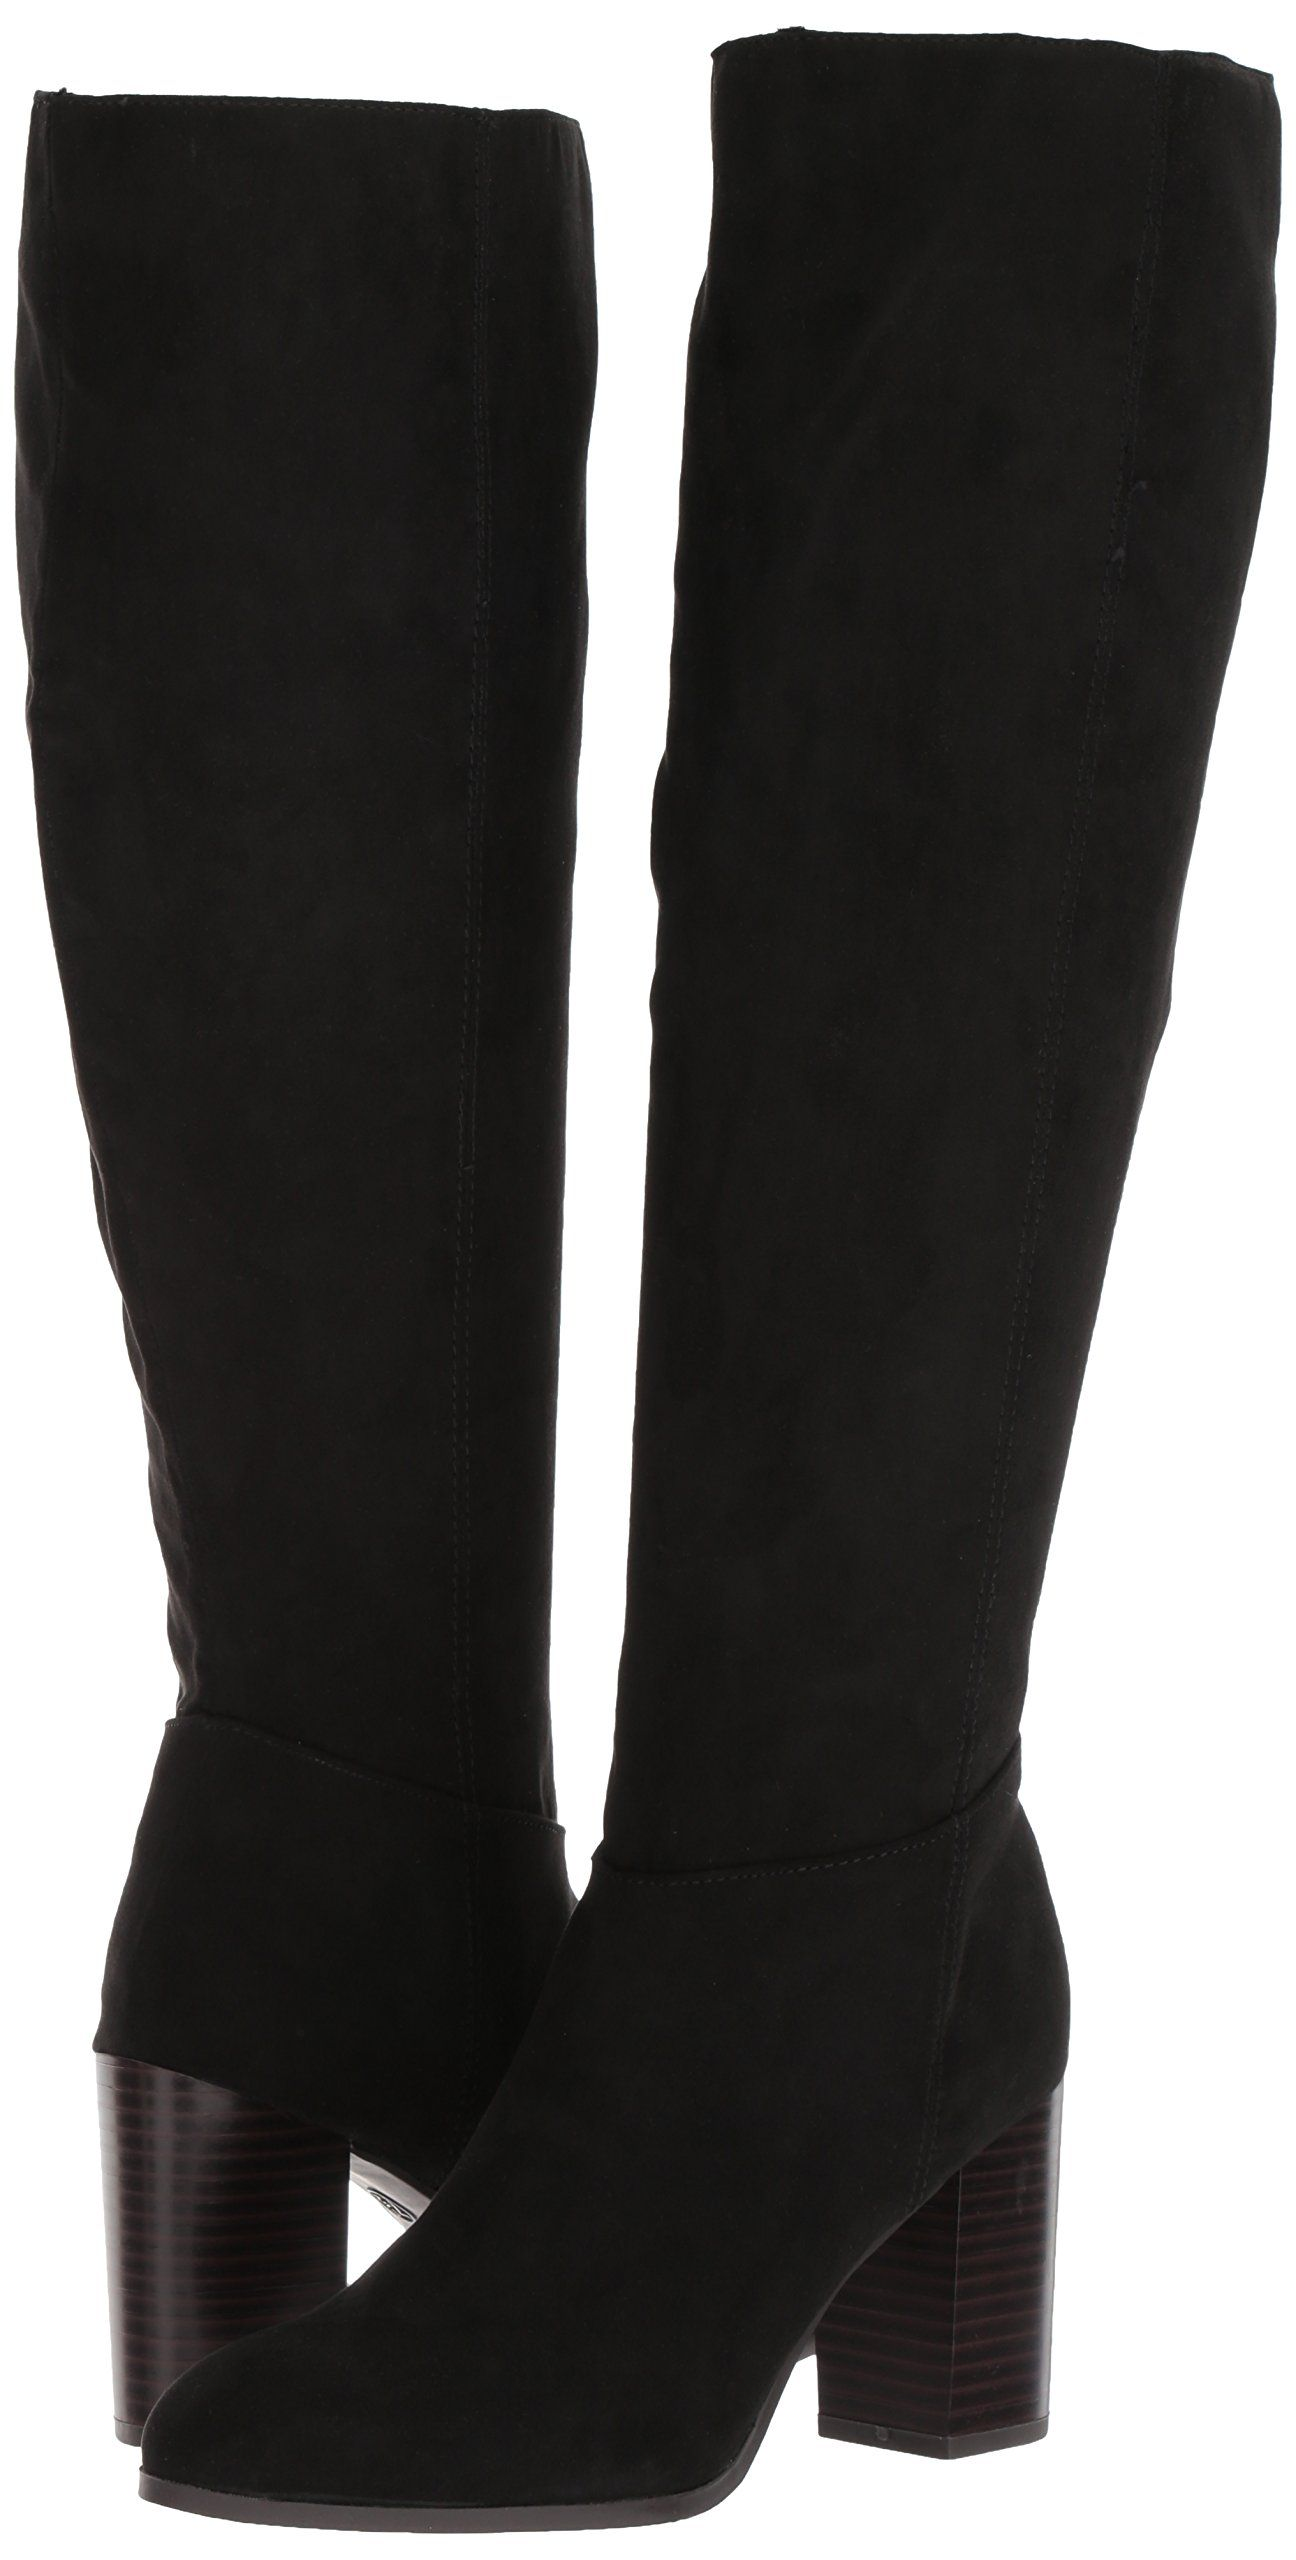 a1d6d0b2f8f Circus by Sam Edelman Womens Sibley Knee High Boot Black 10 Medium US --  Visit the image link more details. (This is an affiliate link)   womenkneehighboot